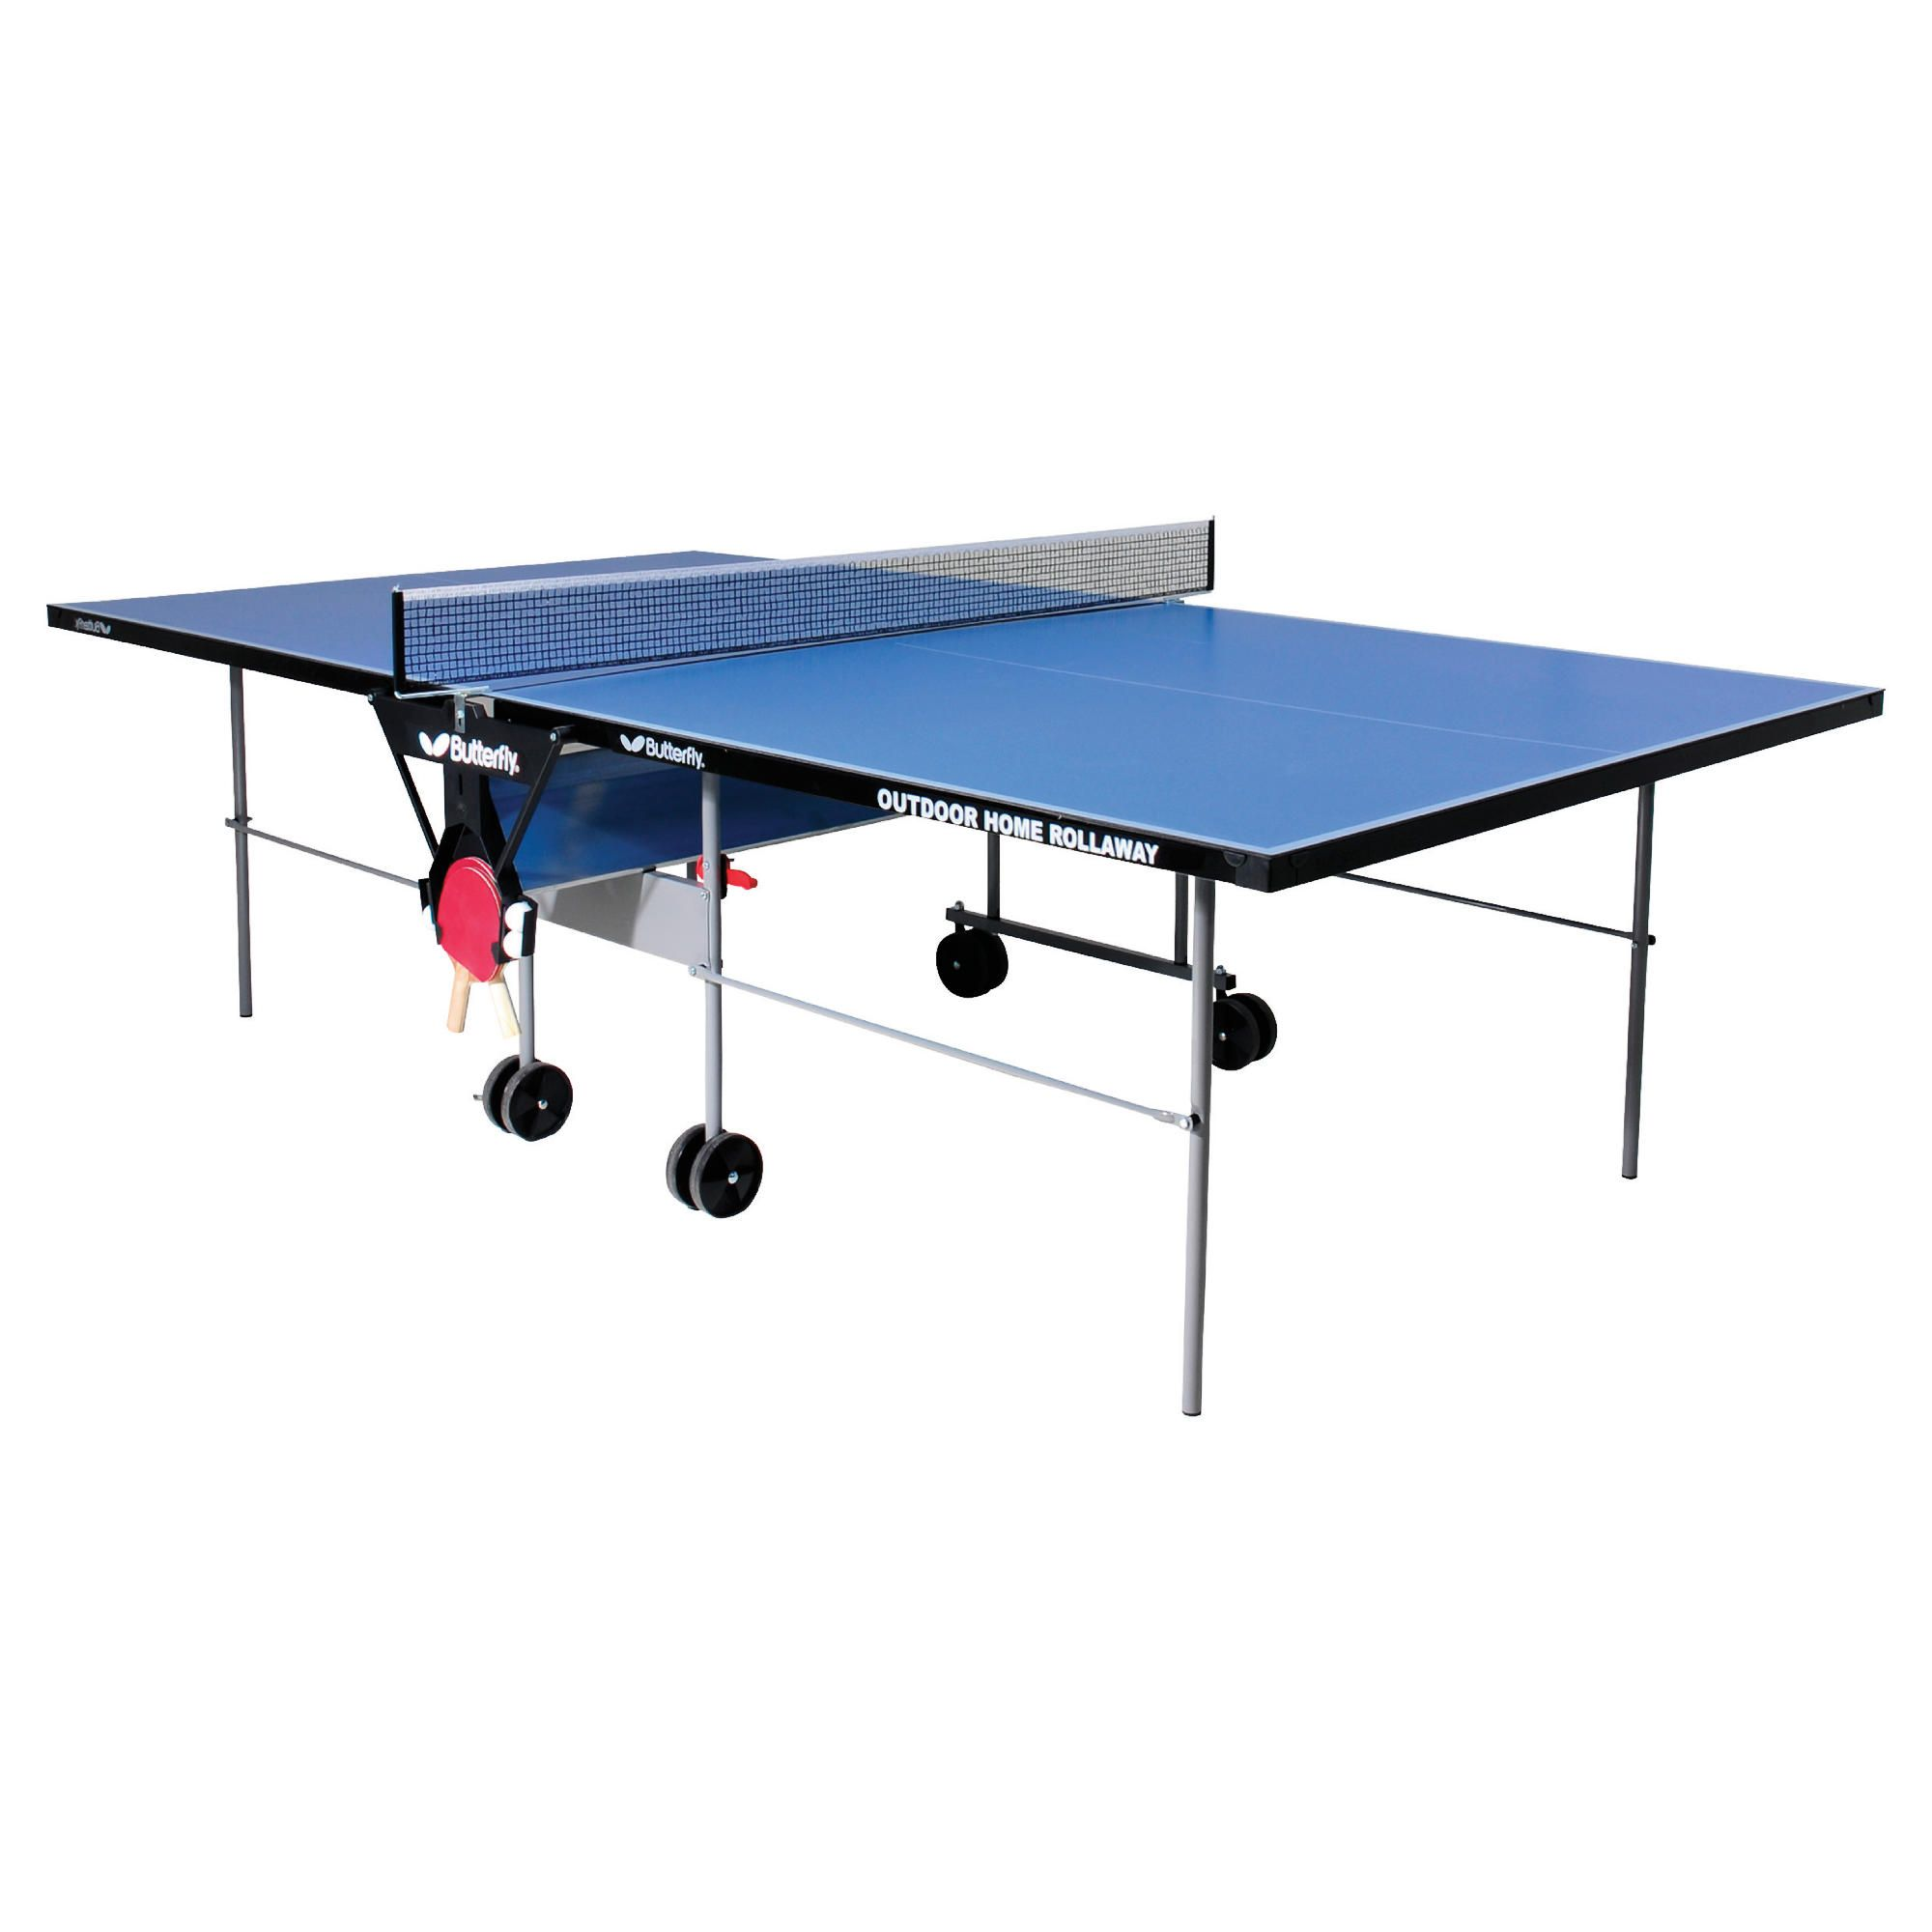 Butterfly Home Rollaway Table Tennis Table - Blue at Tesco Direct